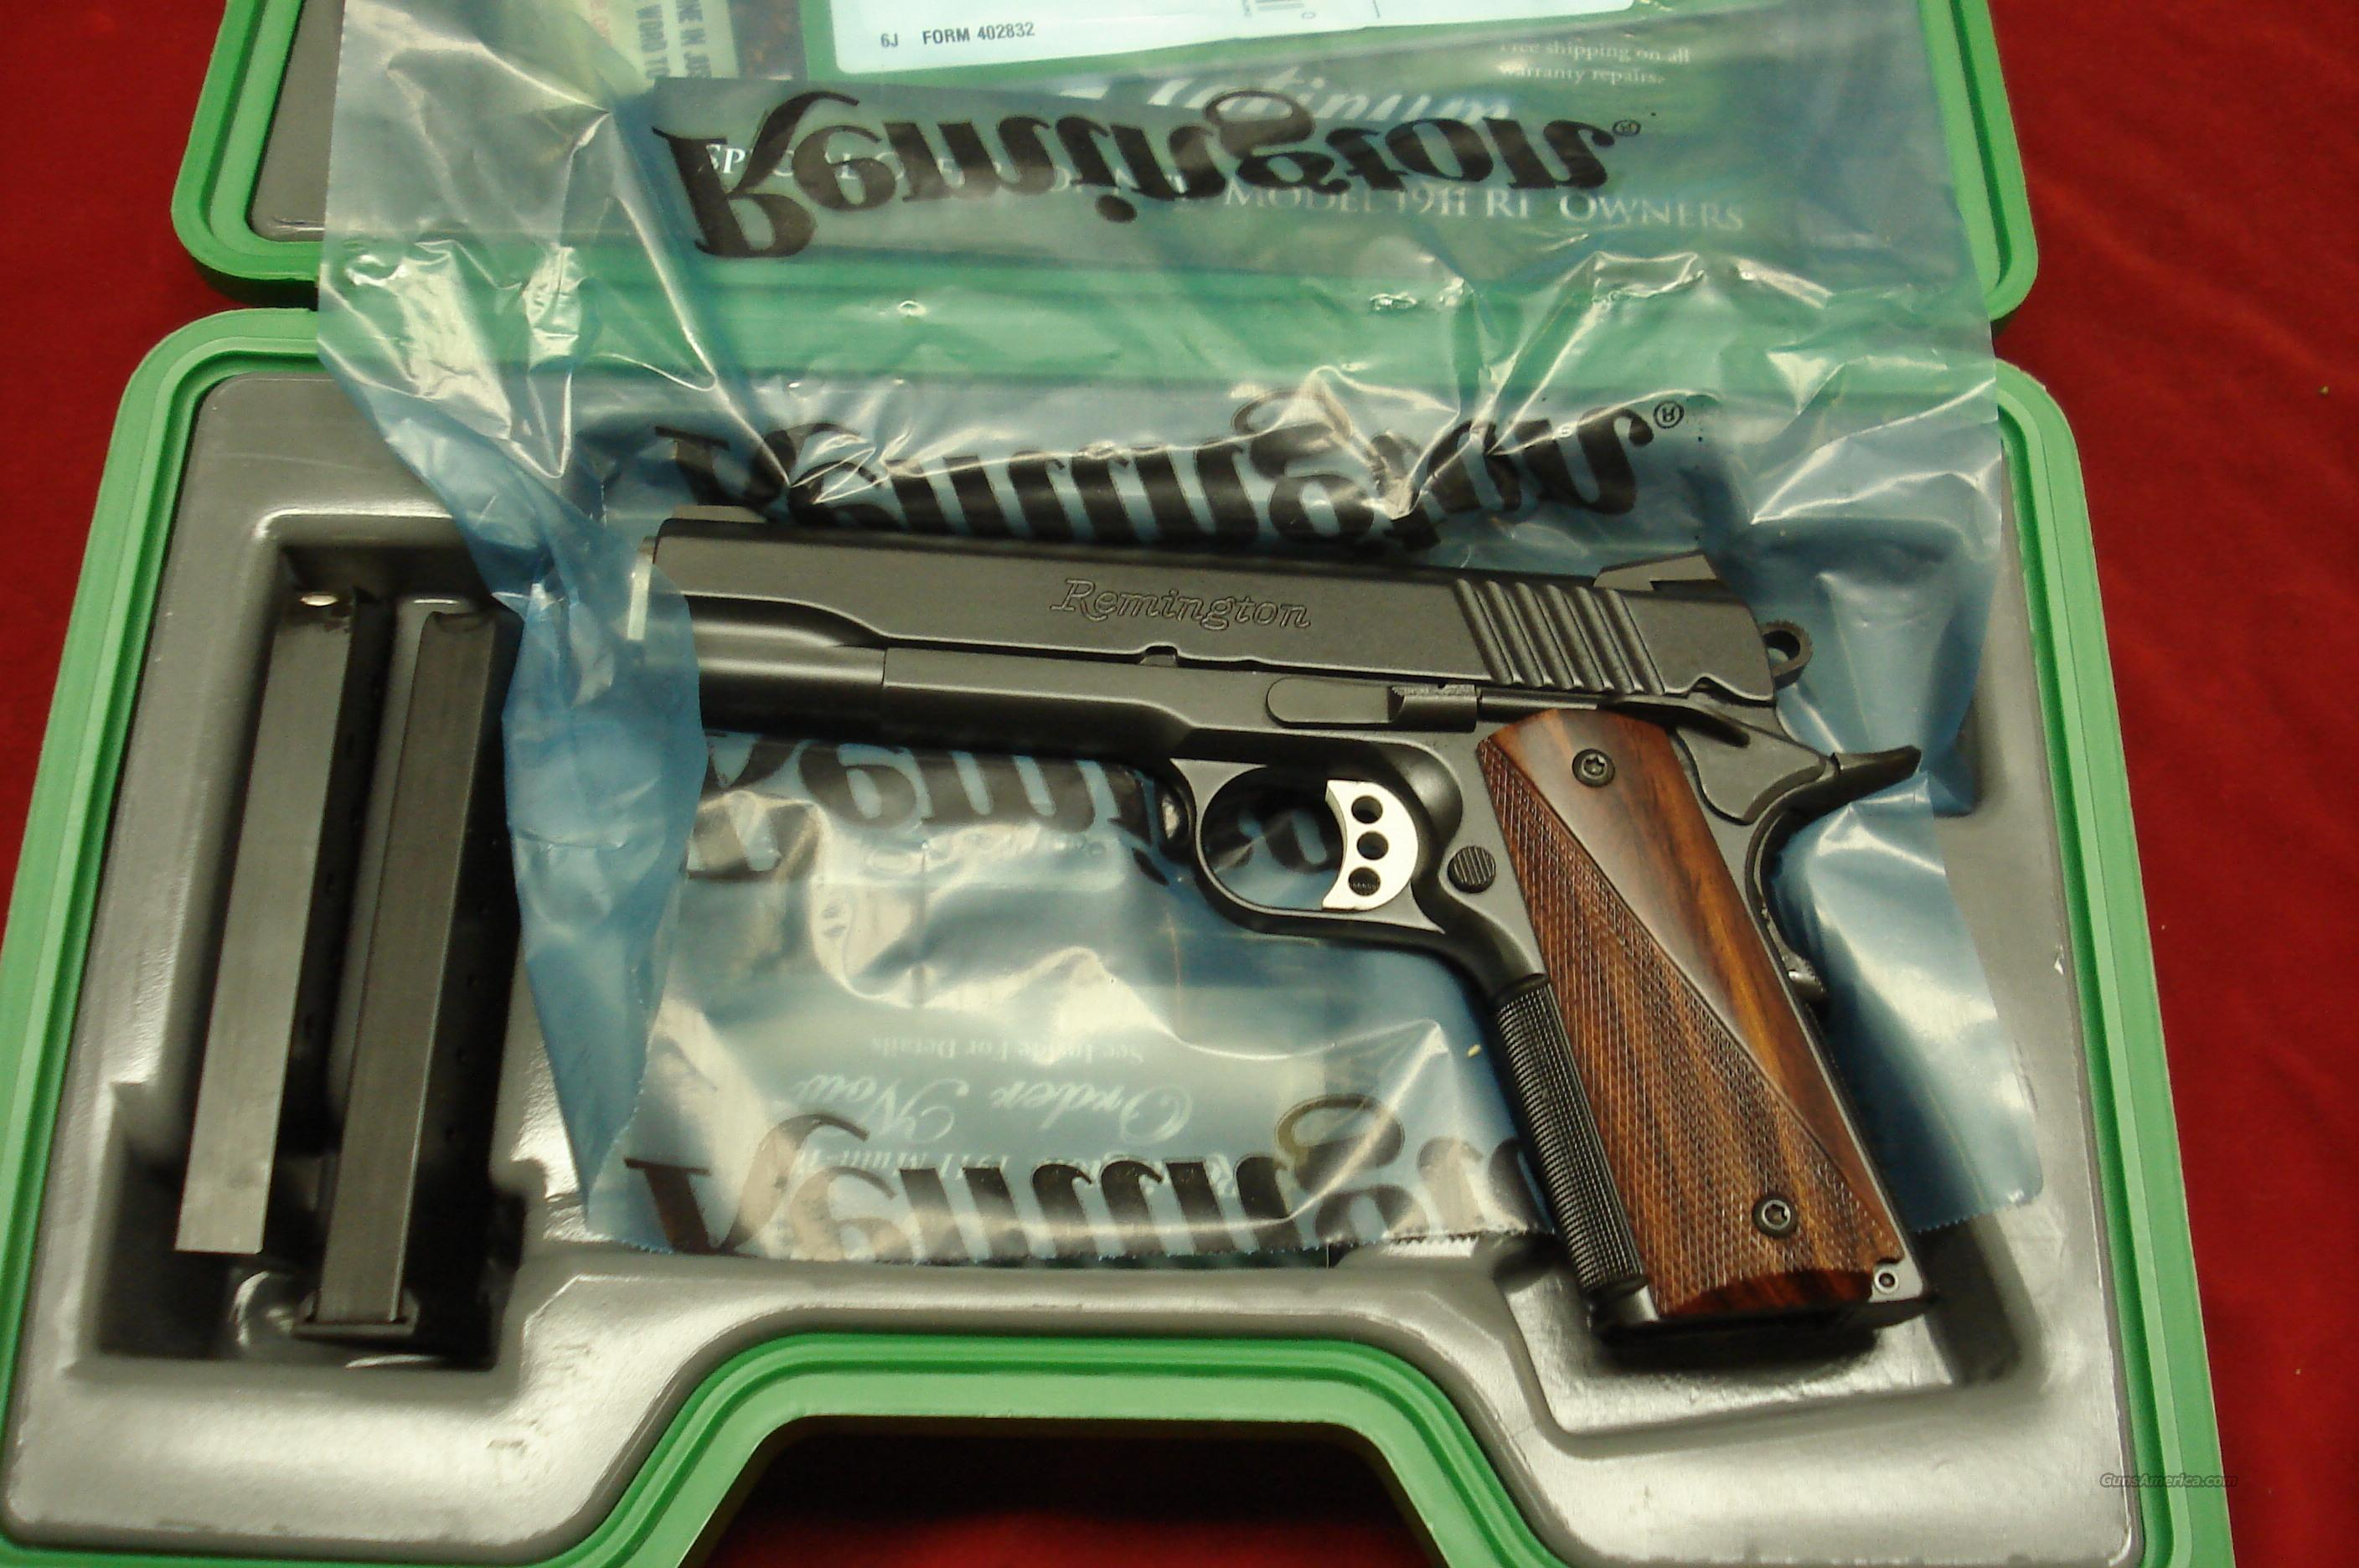 REMINGTON 1911 R1 CARRY 45ACP NEW   Guns > Pistols > Remington Pistols - Modern